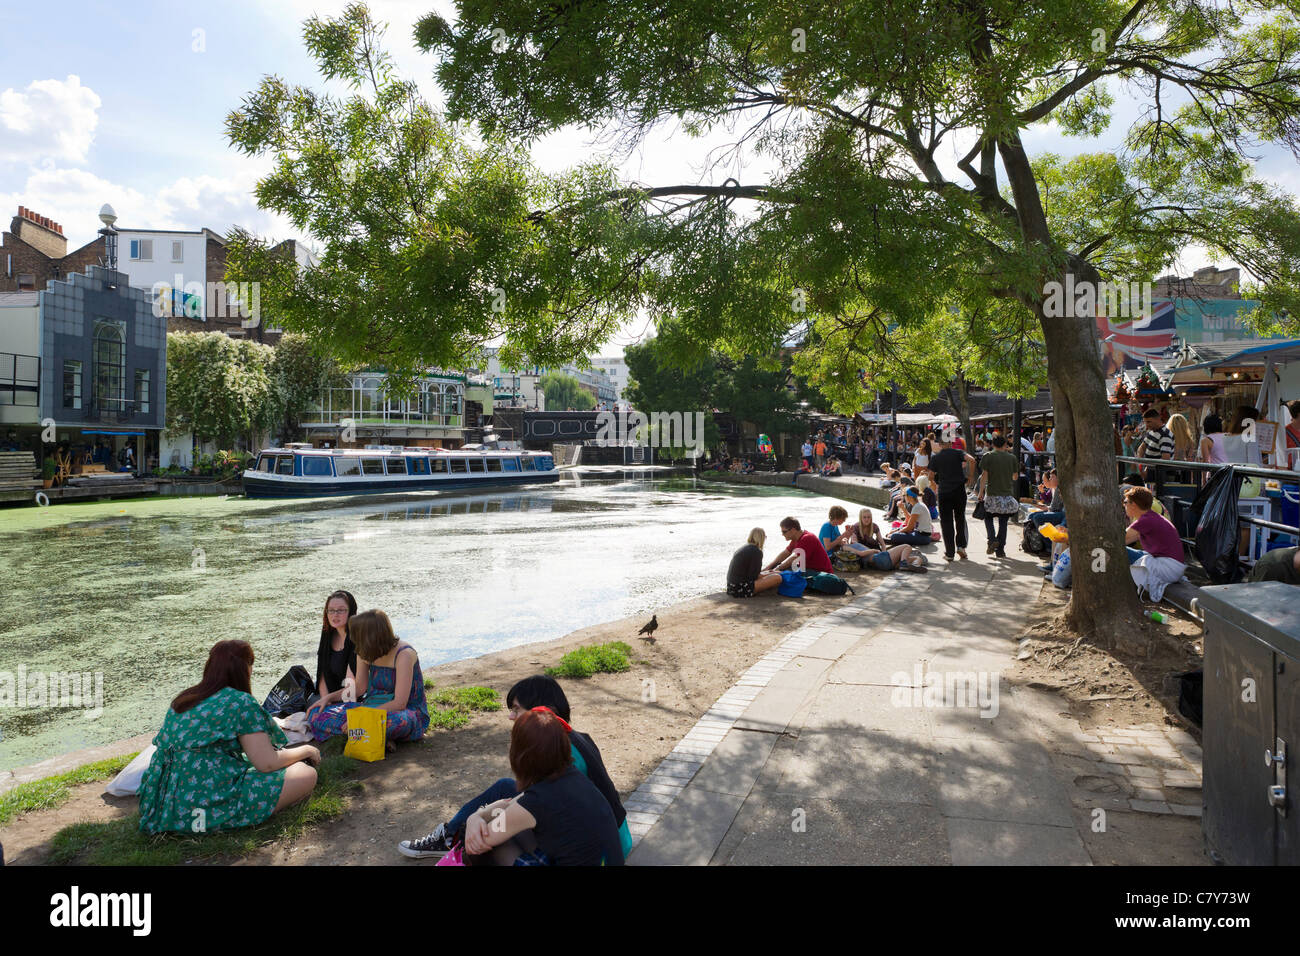 Young people sitting along the banks of the Regent's Canal at Camden Lock, North London, England, UK Stock Photo